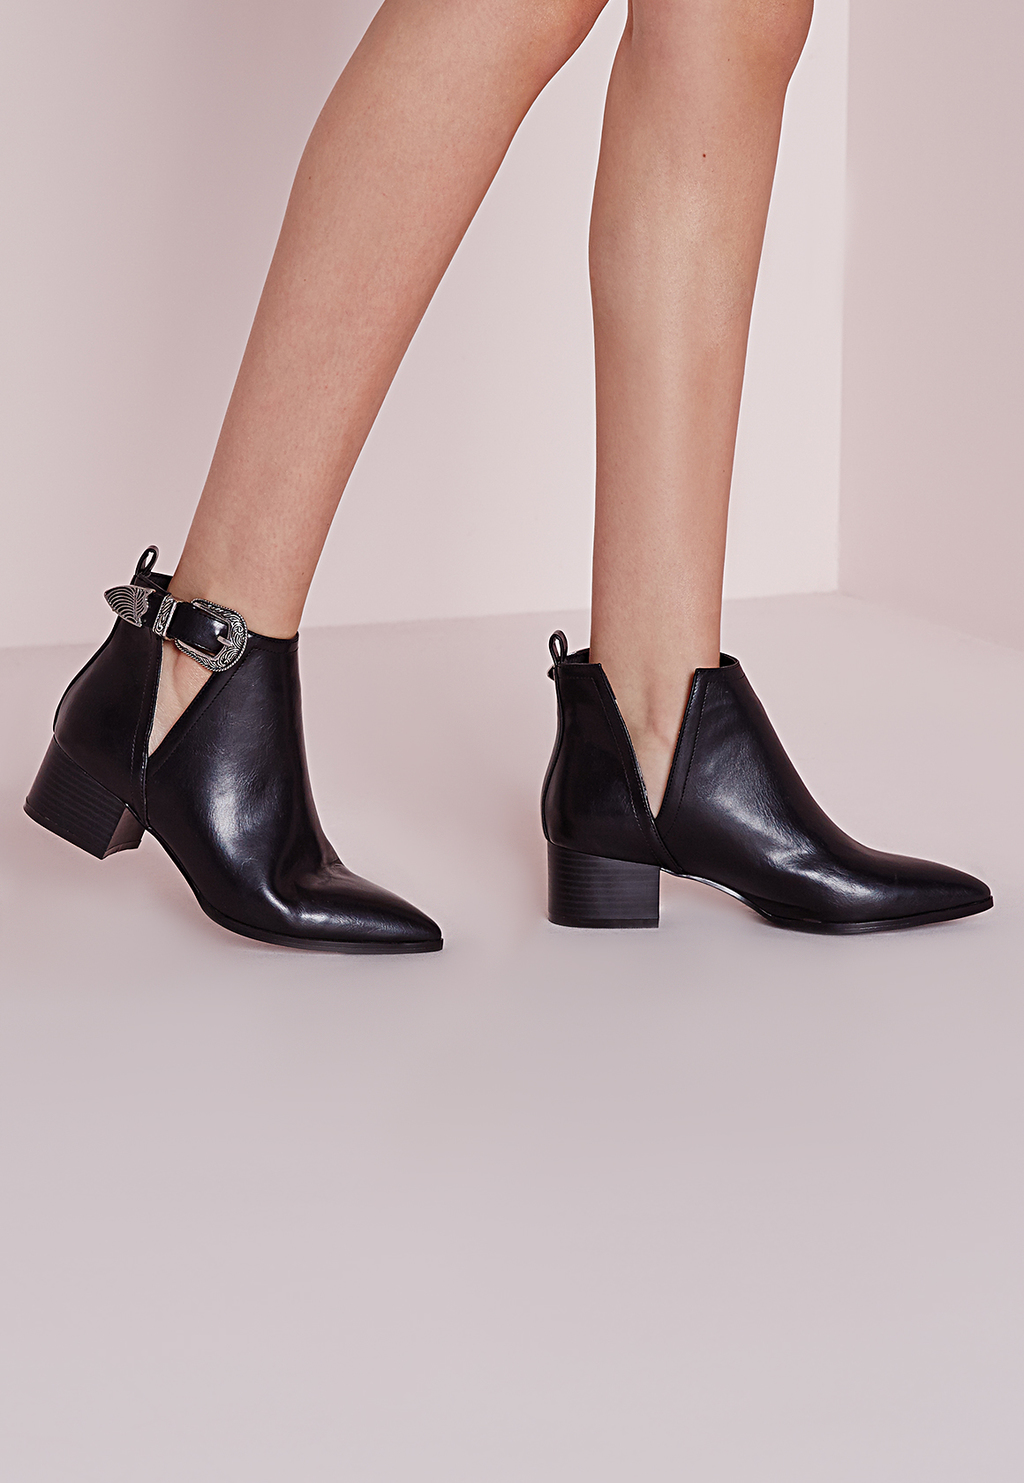 Pointed Toe Ankle Boots Black, Black - predominant colour: black; occasions: casual, creative work; material: leather; heel height: mid; embellishment: buckles; heel: block; toe: round toe; boot length: ankle boot; style: standard; finish: plain; pattern: plain; season: s/s 2016; wardrobe: basic